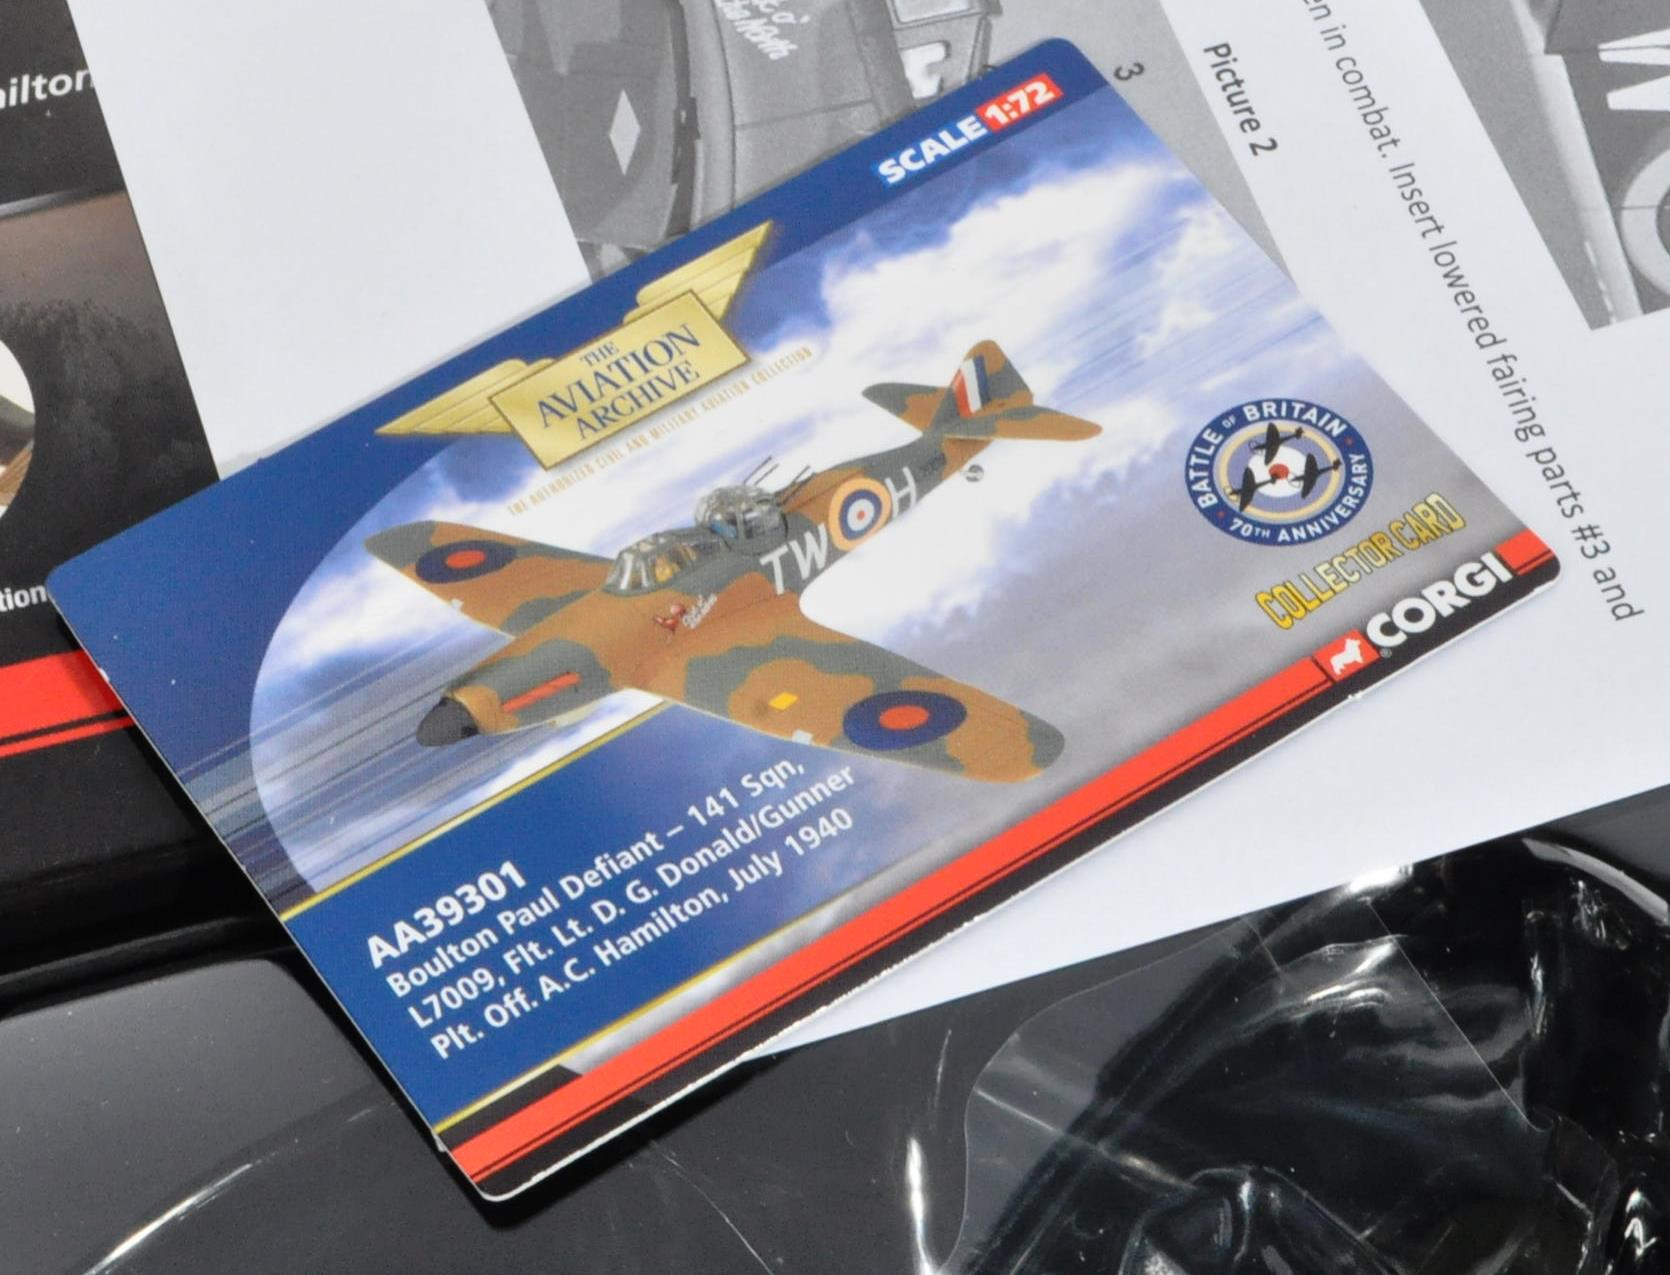 CORGI AVIATION ARCHIVE - TWO BOXED 1/72 & 1/48 SCALE MODELS - Image 3 of 4